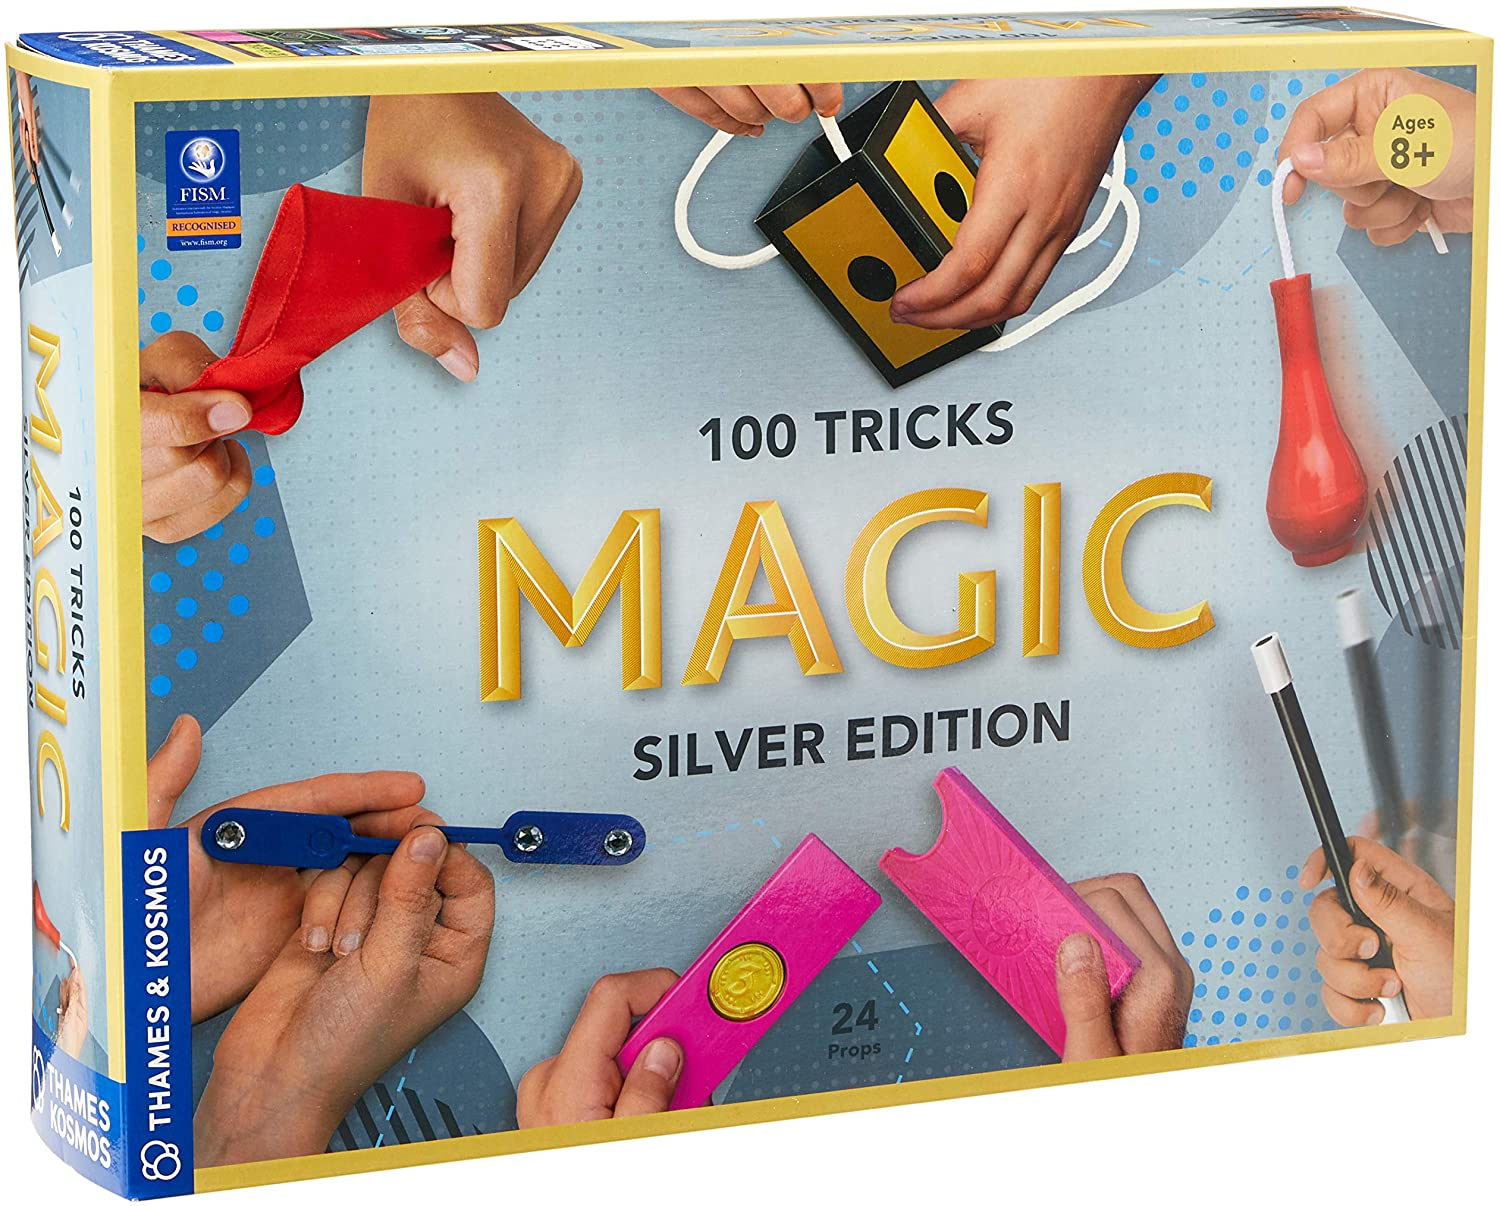 Magic: 100 Tricks (Silver Edition)